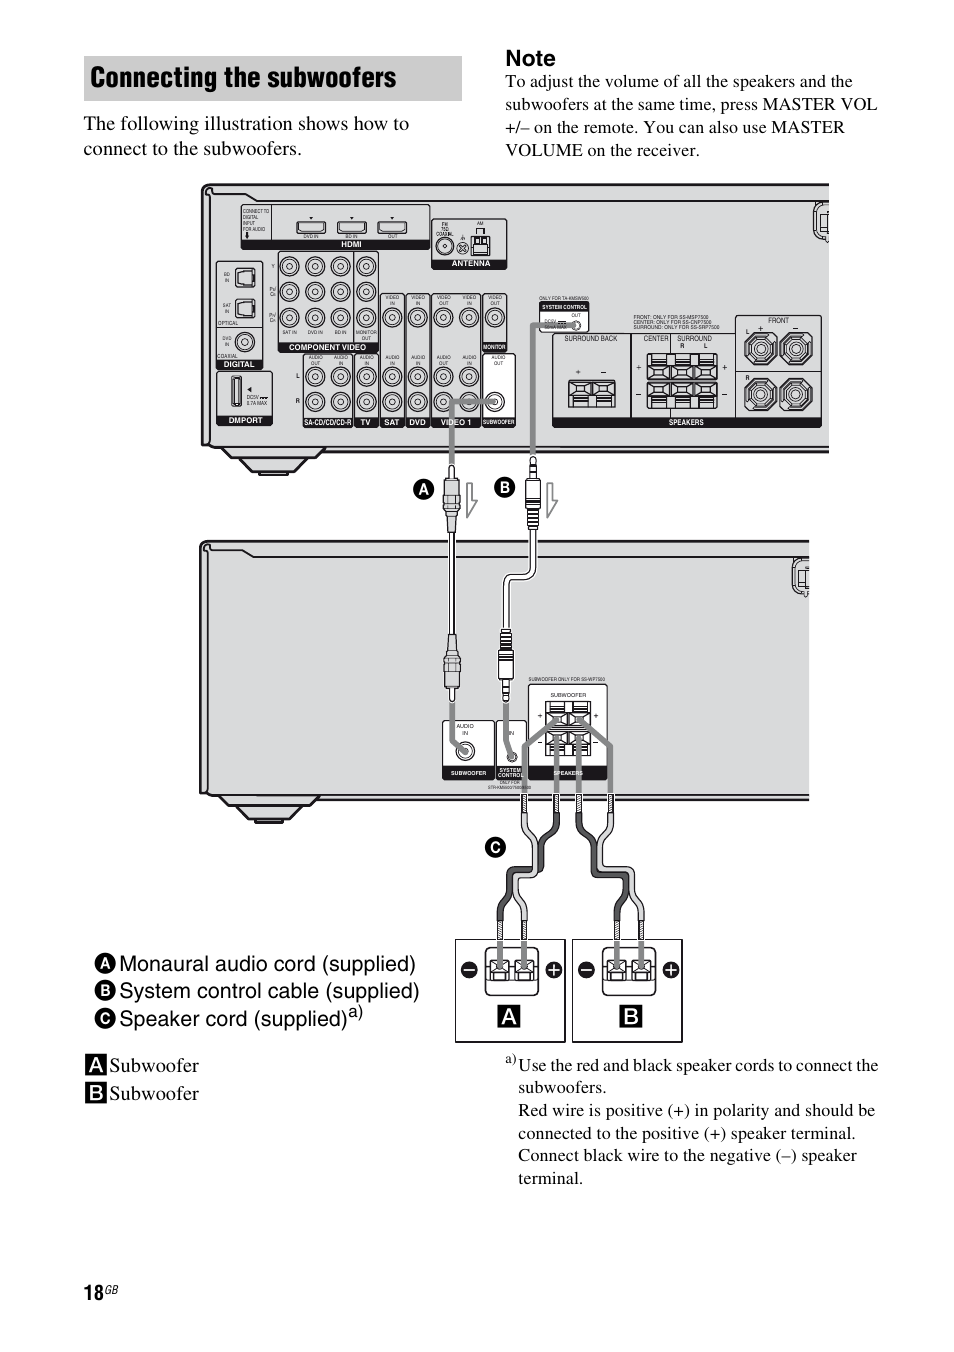 Sony Ht Ddw Wiring Diagram And Schematics Subwoofer Connecting The Subwoofers Asubwoofer Bsubwoofer Ddw5500 User Manual Page 18 76